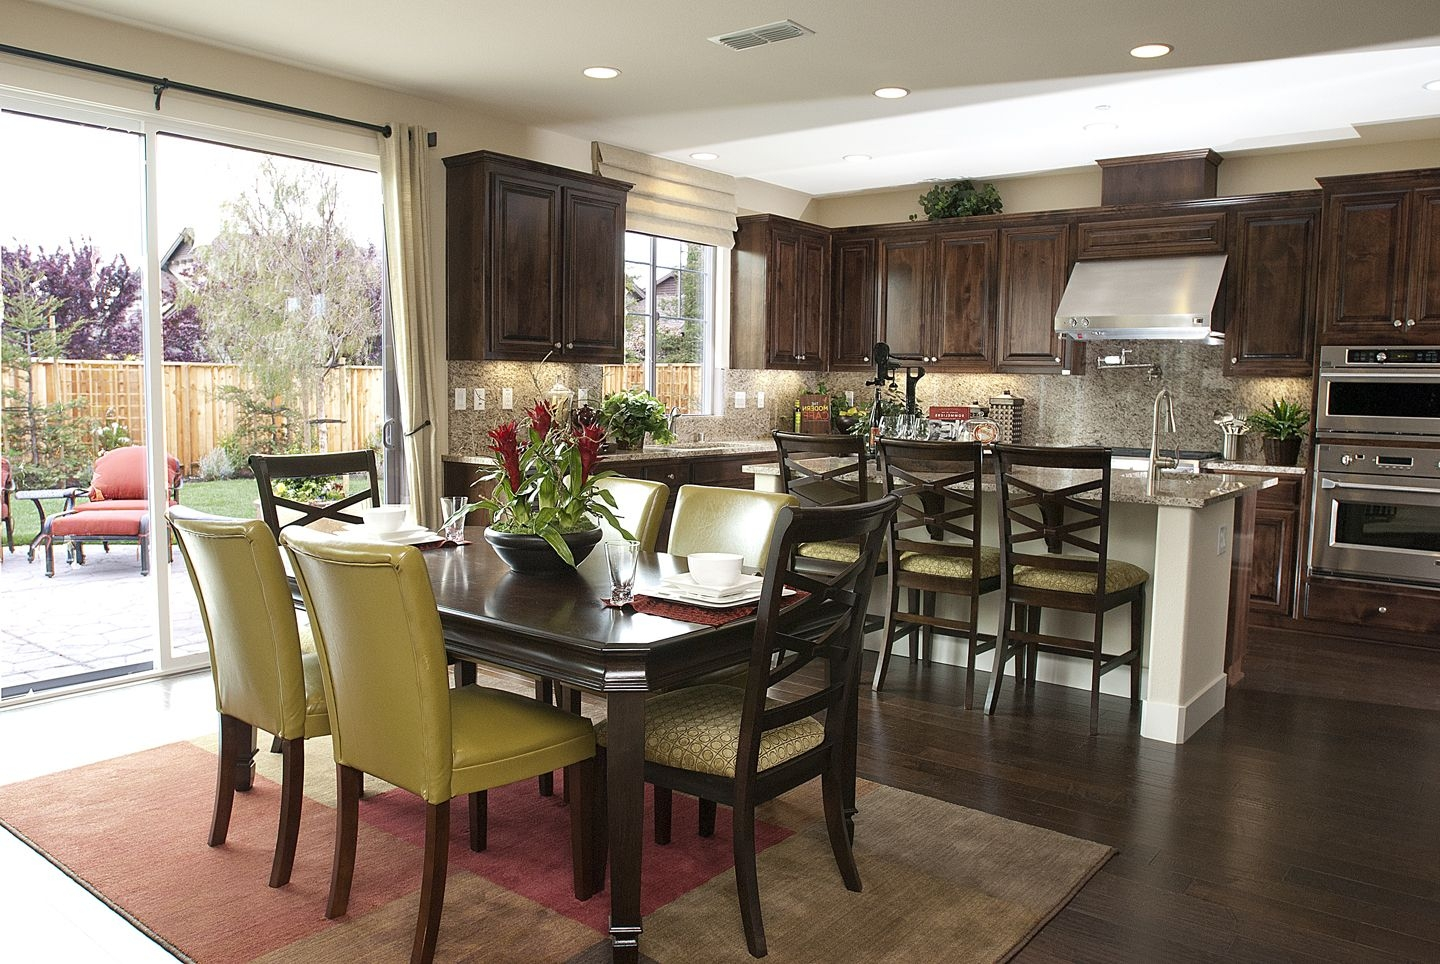 Antique Dining Room And Kitchen Interior Design Combo 8078  House Decoration Ideas